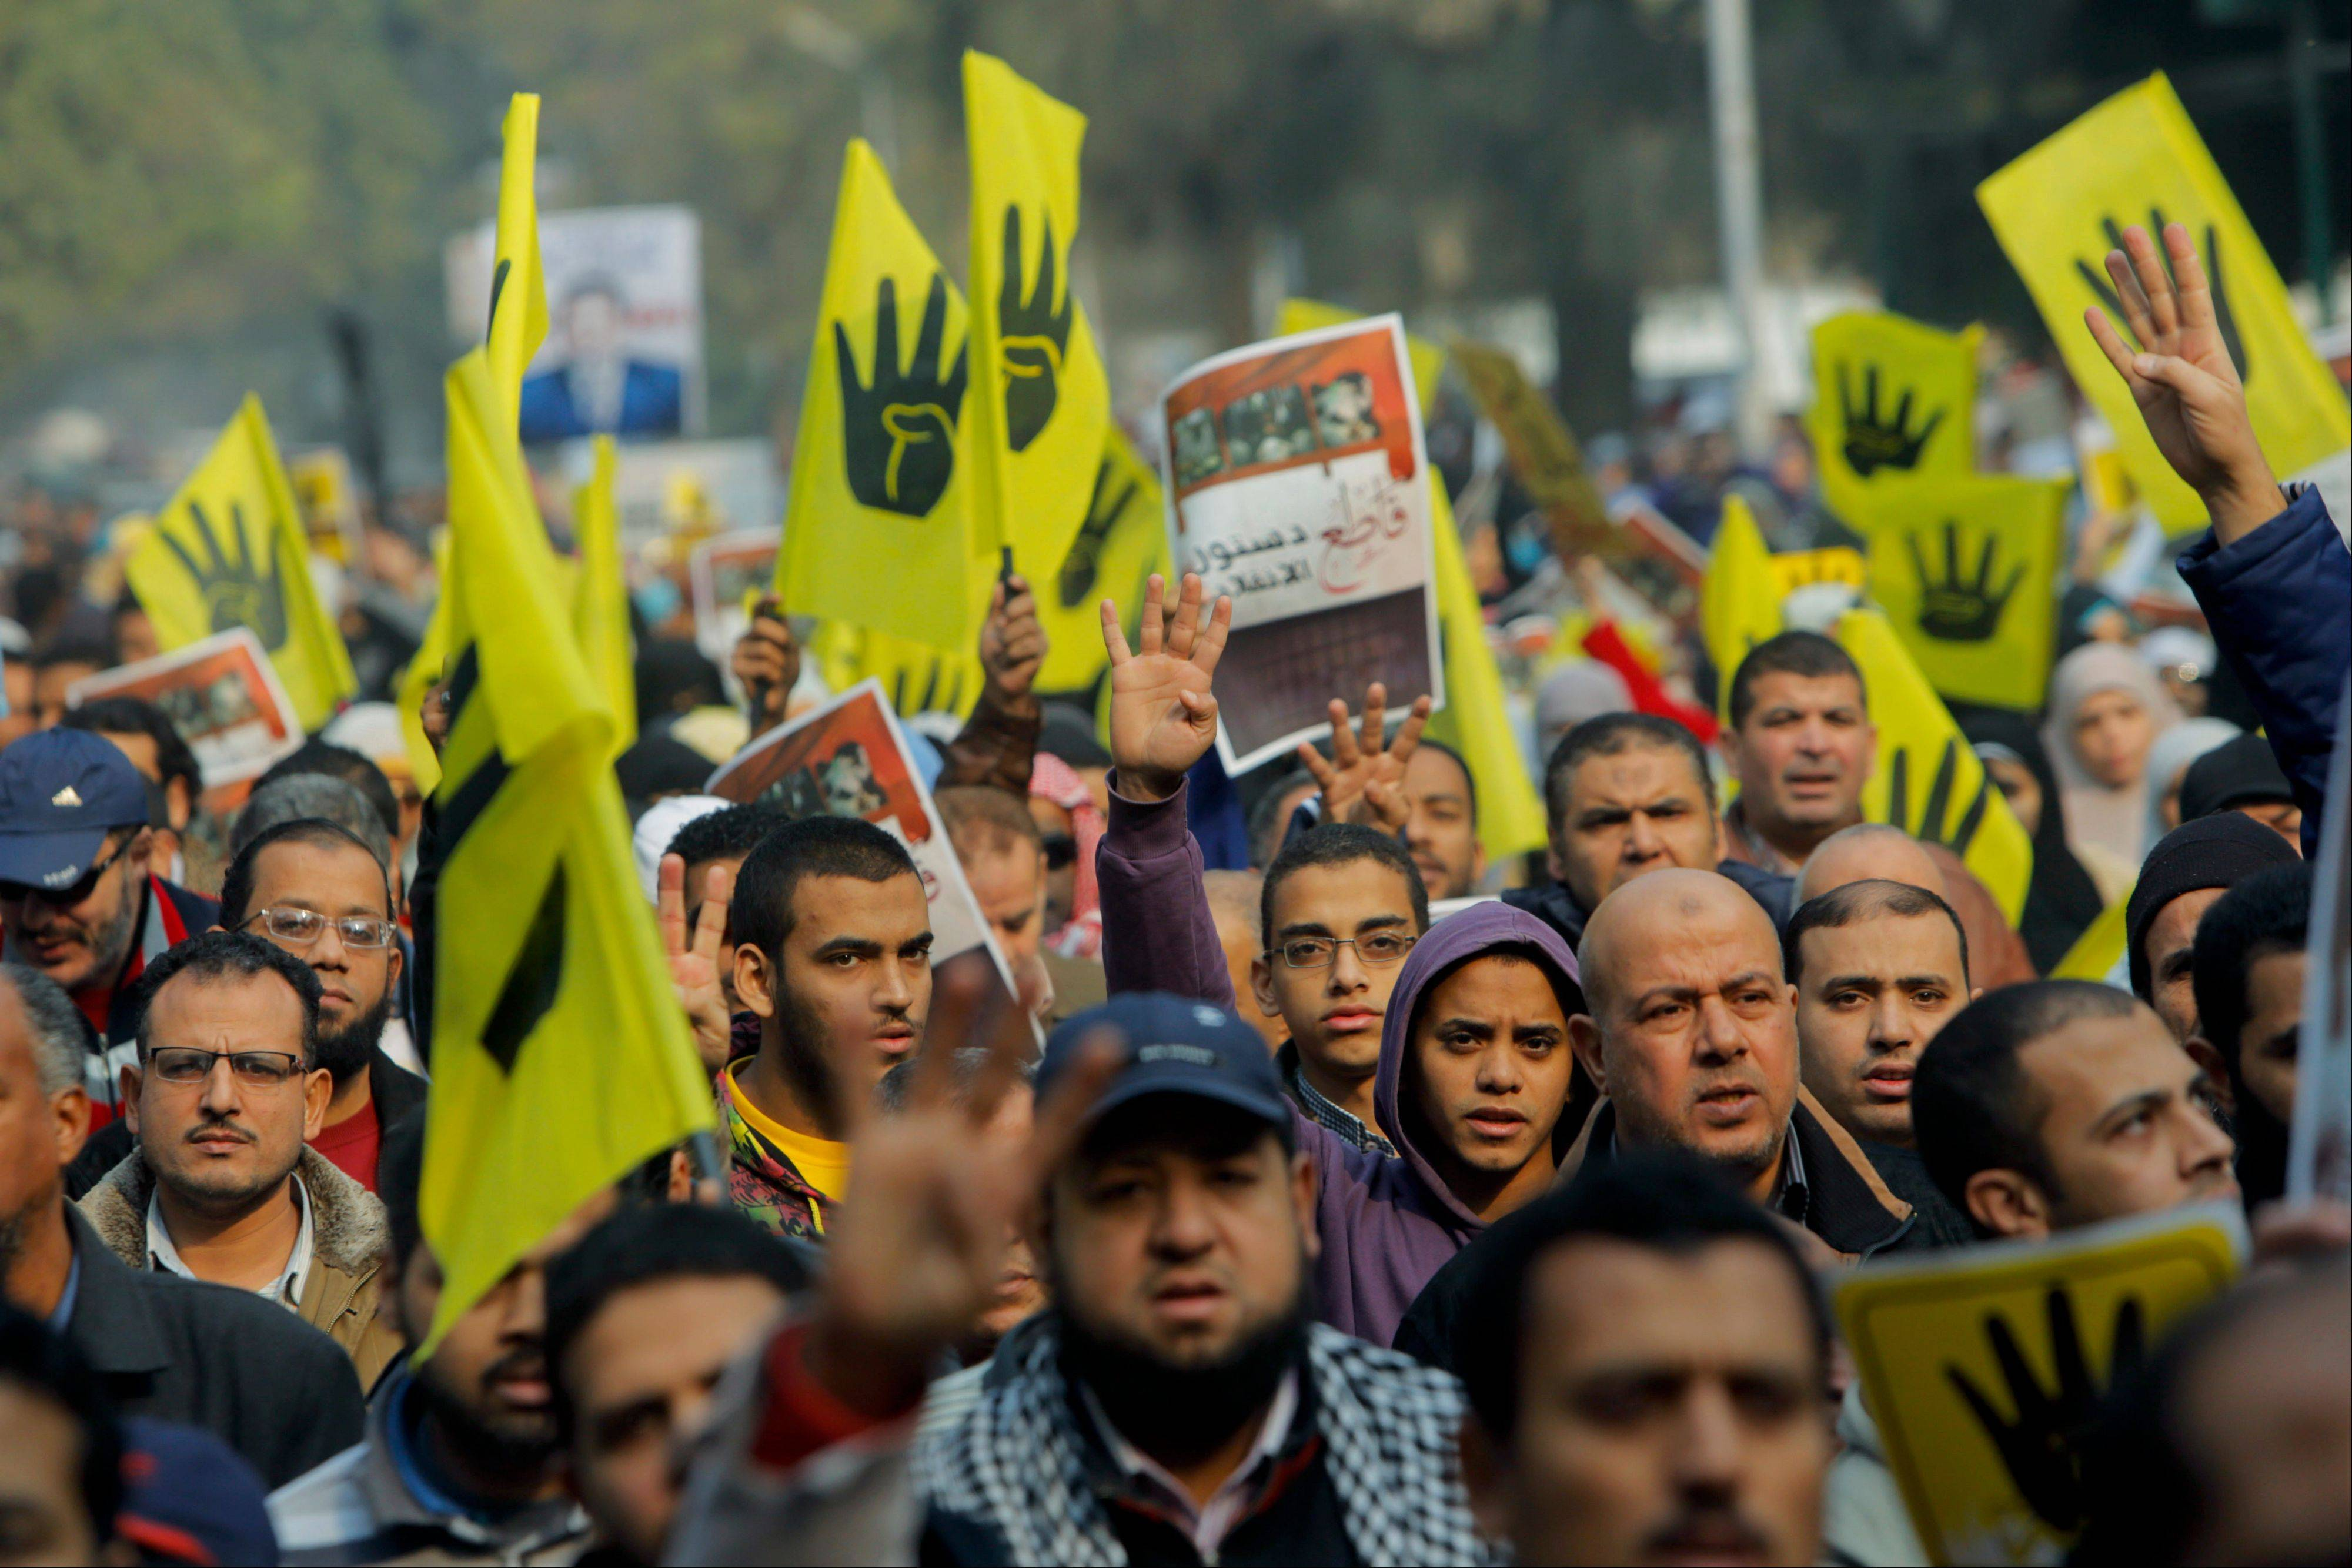 Supporters of Egypt's ousted President Mohammed Morsi raise flags Friday with a logo showing a hand with four raised fingers which has become a symbol of the Rabaah al-Adawiya mosque, where Morsi supporters had held a sit-in for weeks that was violently dispersed in August.